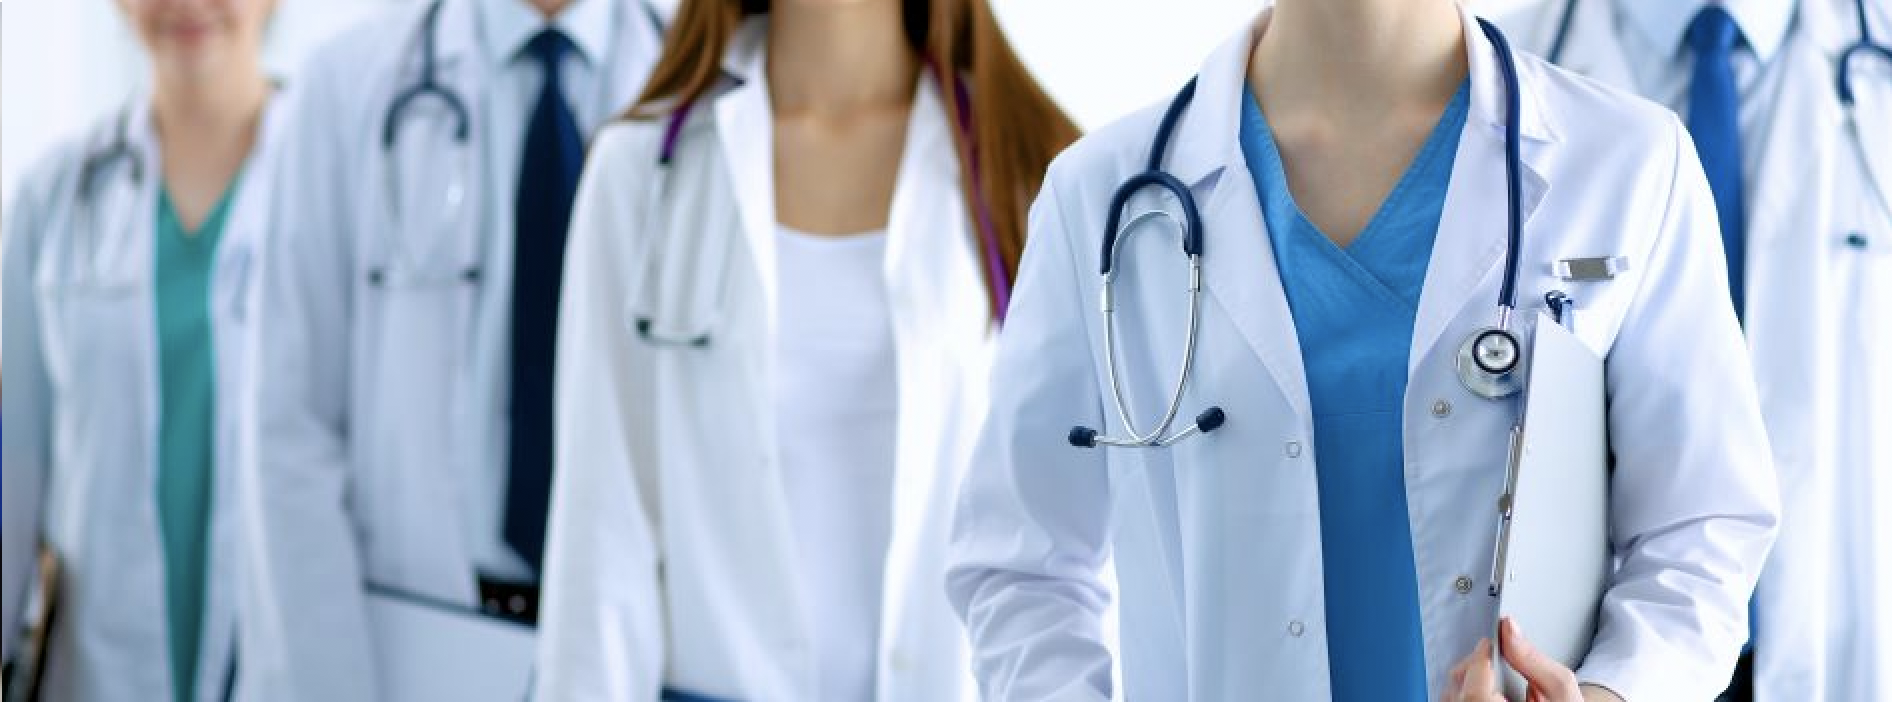 doctors-and-stethoscopes